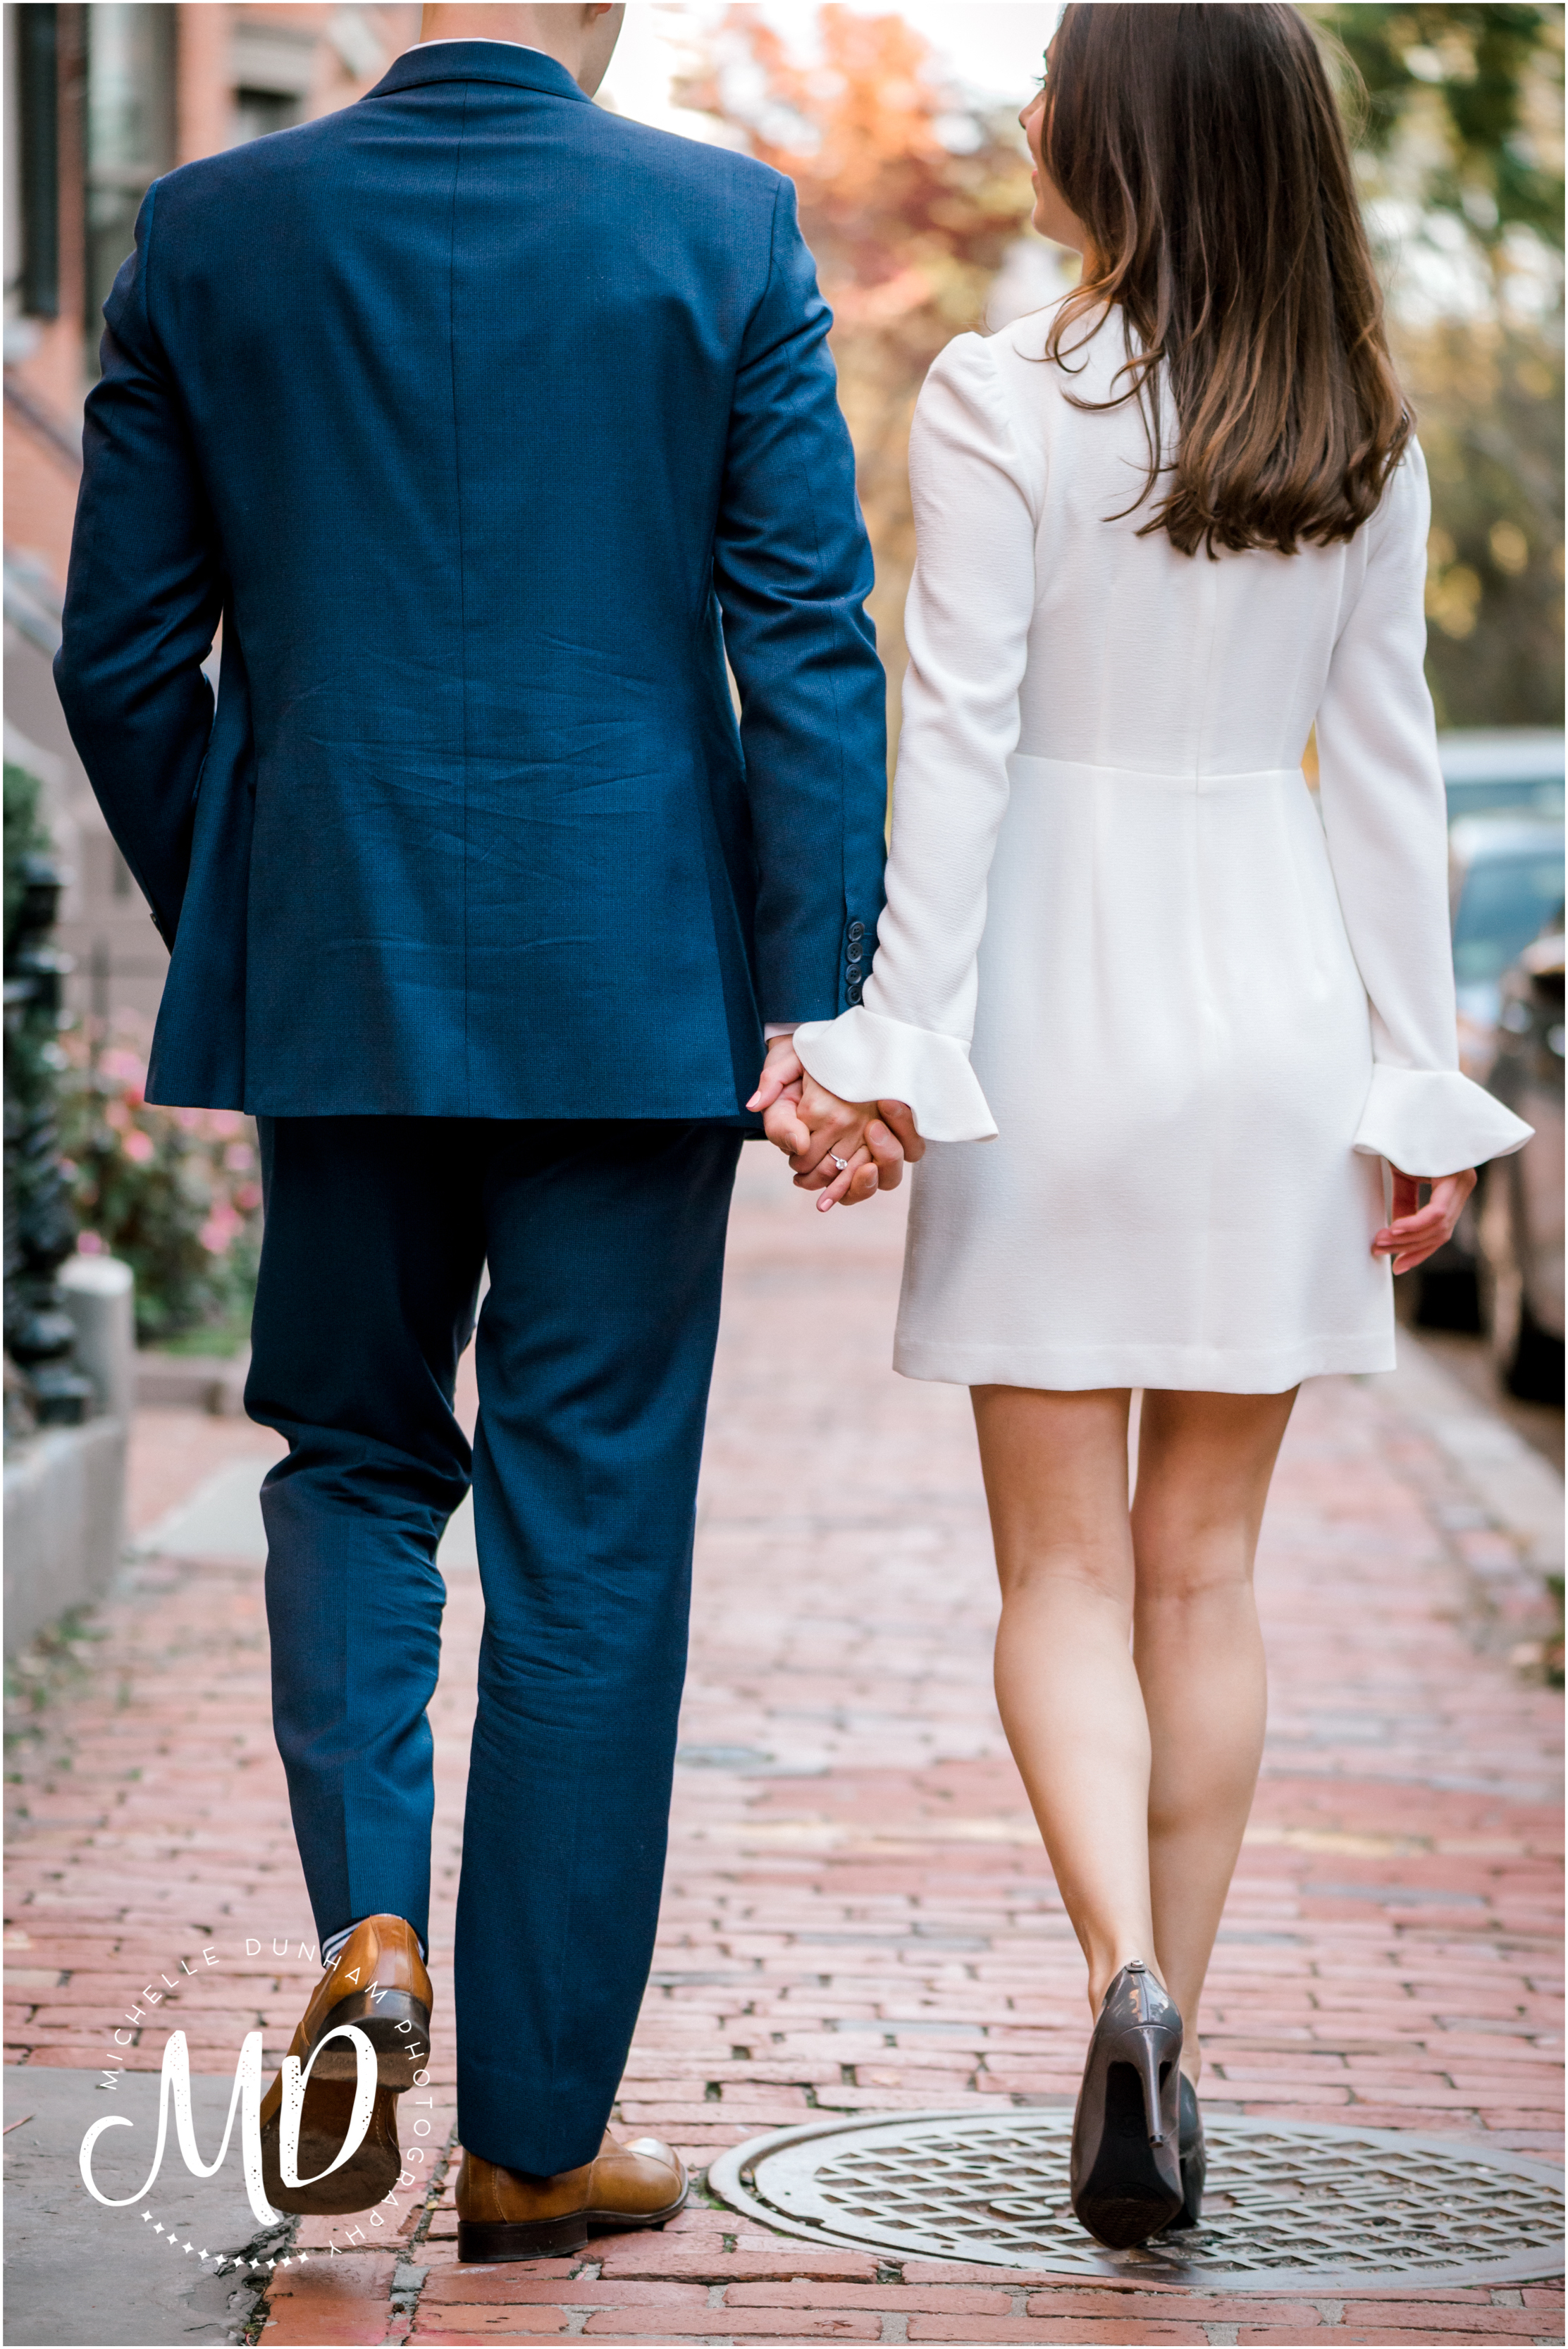 Michelle-Dunham-Photography-Engagement-South-End-Boston-7.jpg